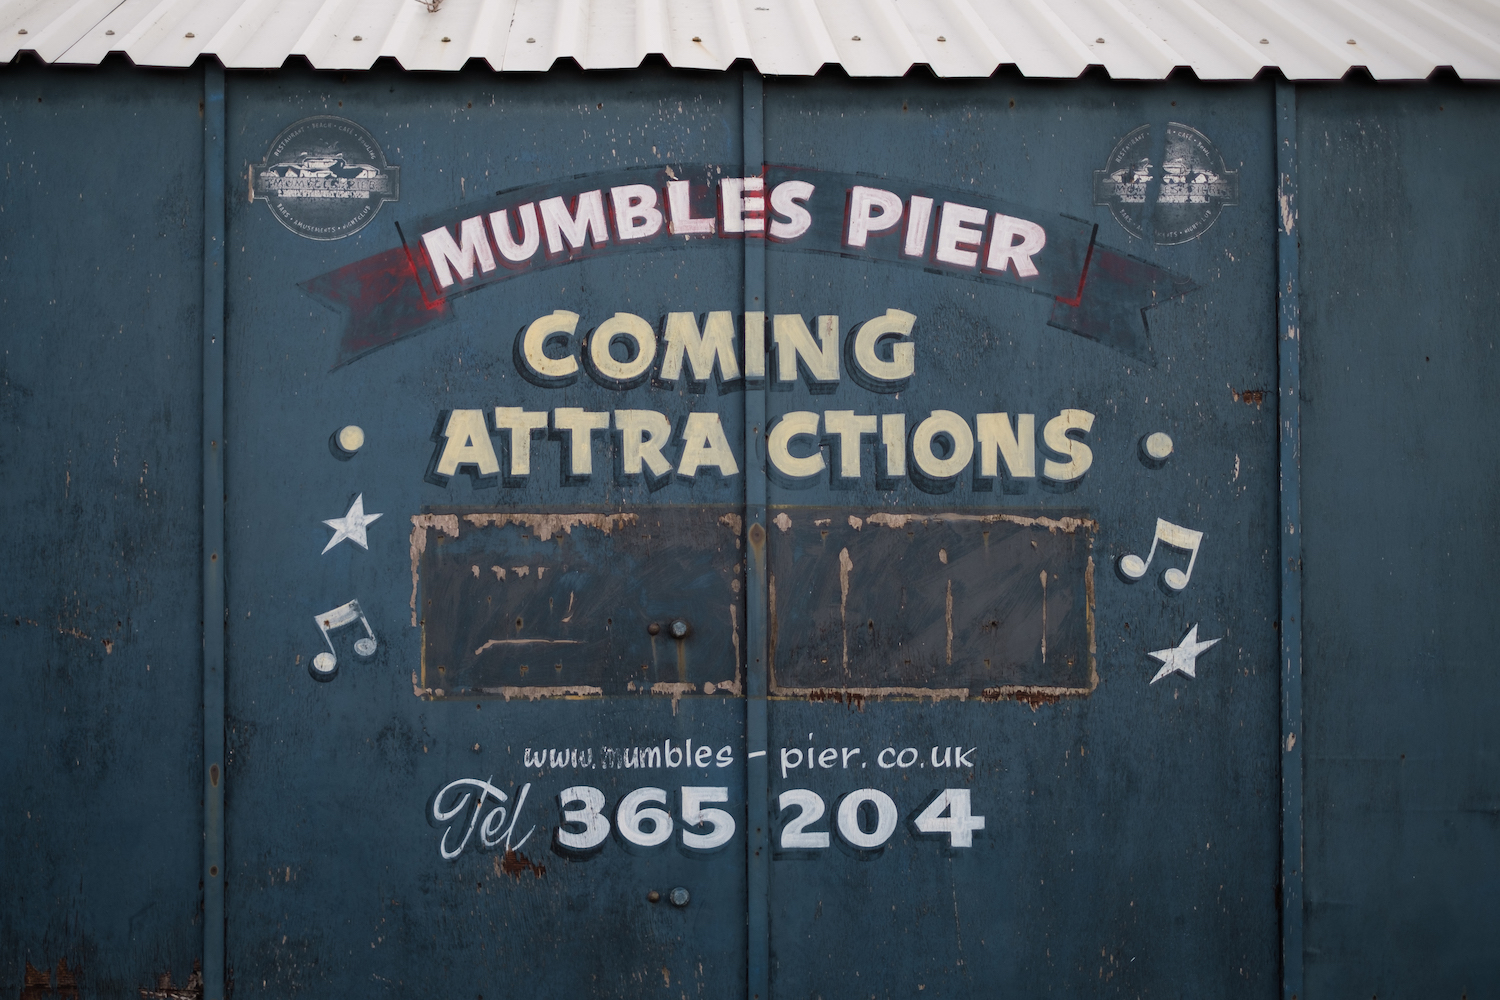 Mumbles Pier, Swansea - Documentary Photo by Ben Holbrook from DriftwoodJournals.com-34